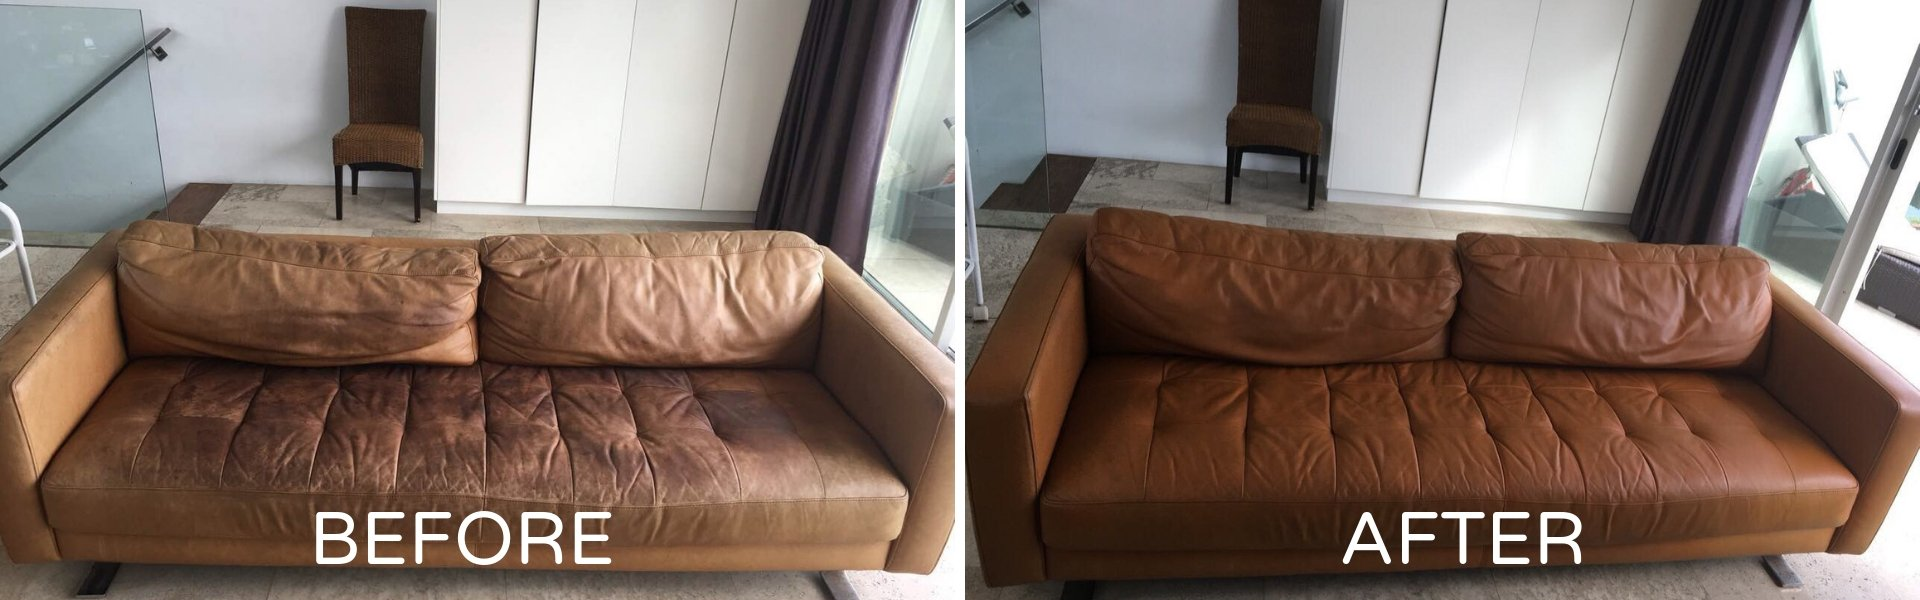 leather and mattress restoration